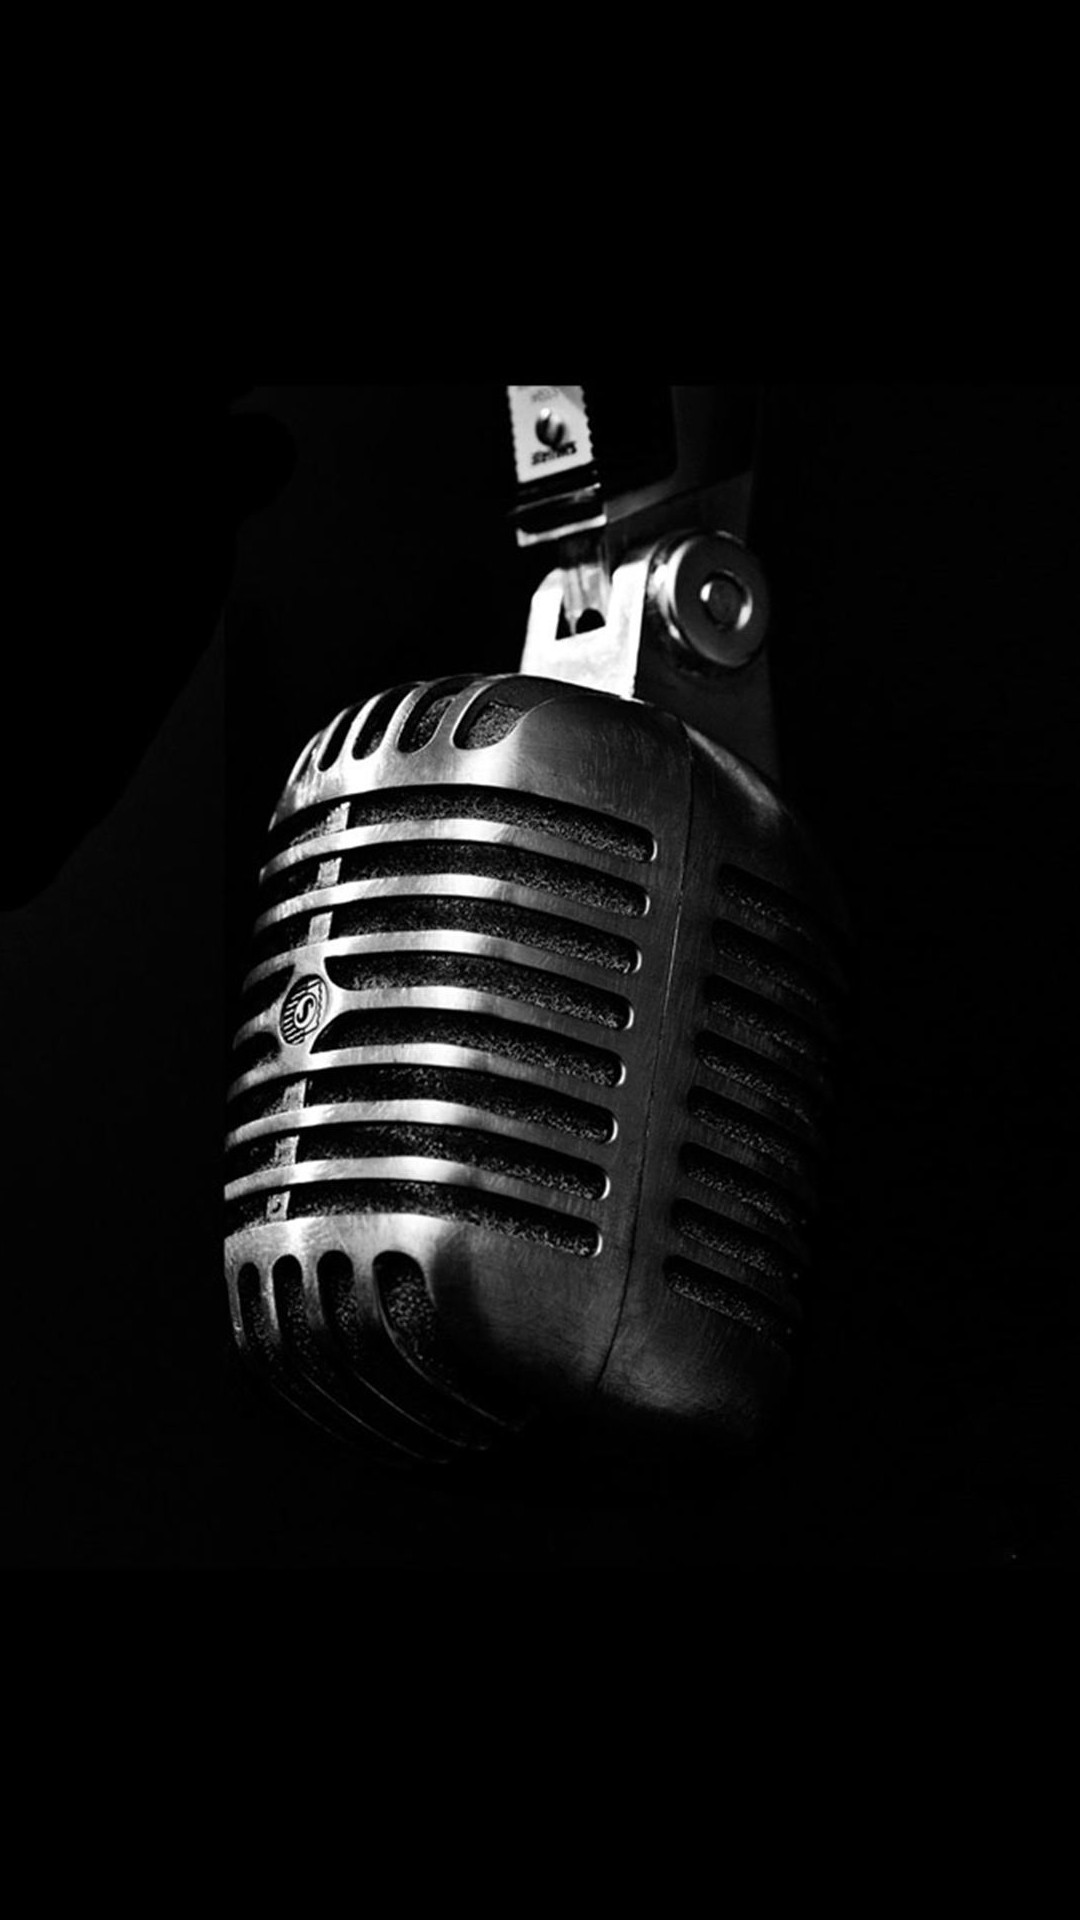 Music microphone htc one wallpaper